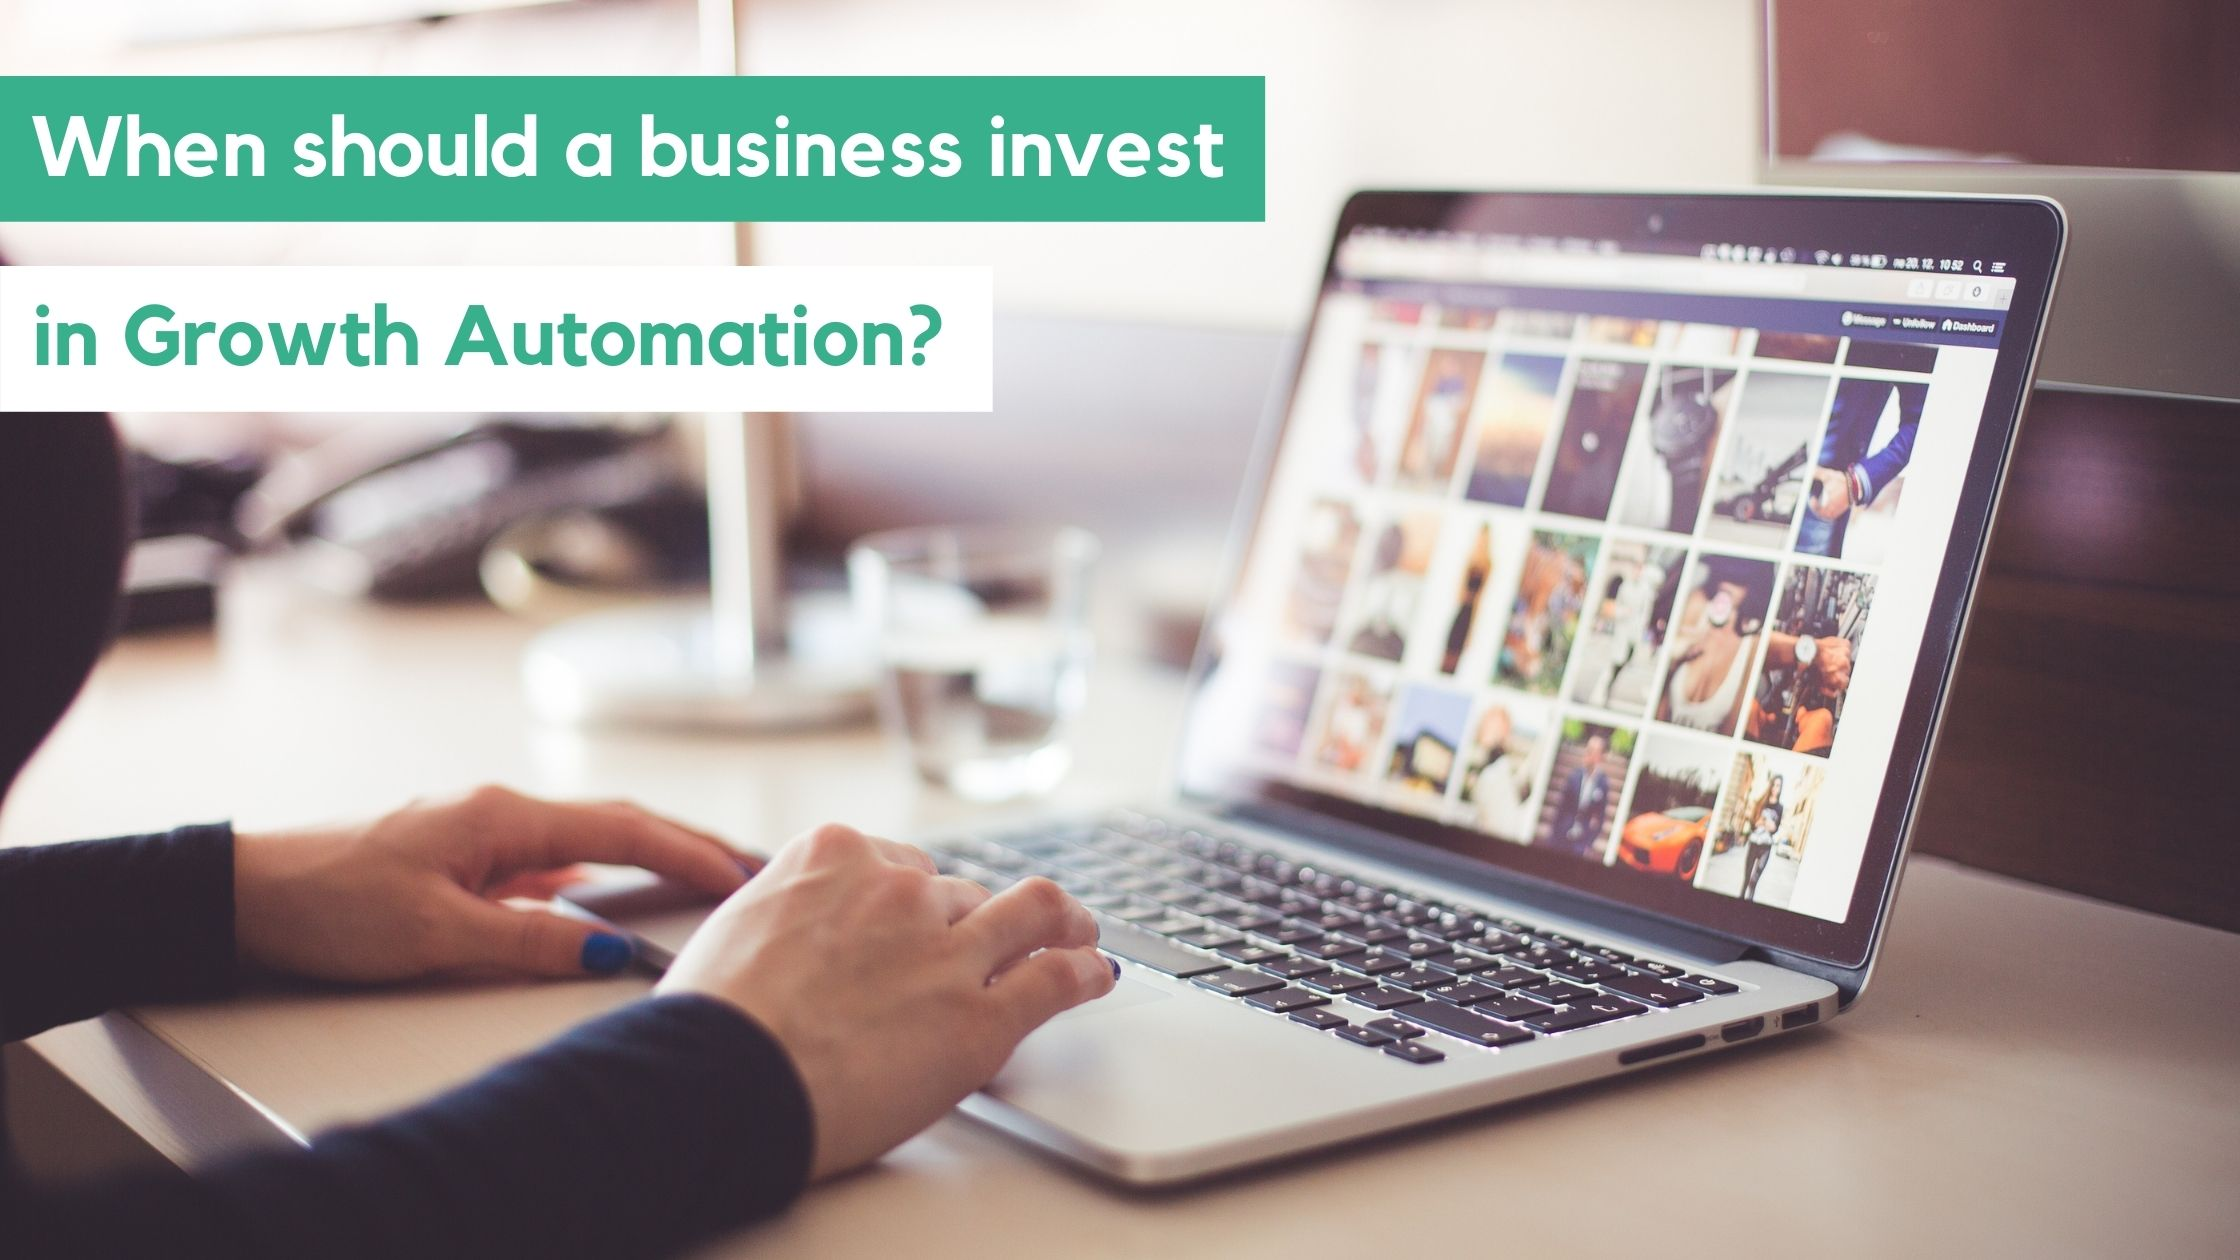 When should a business invest in growth automation